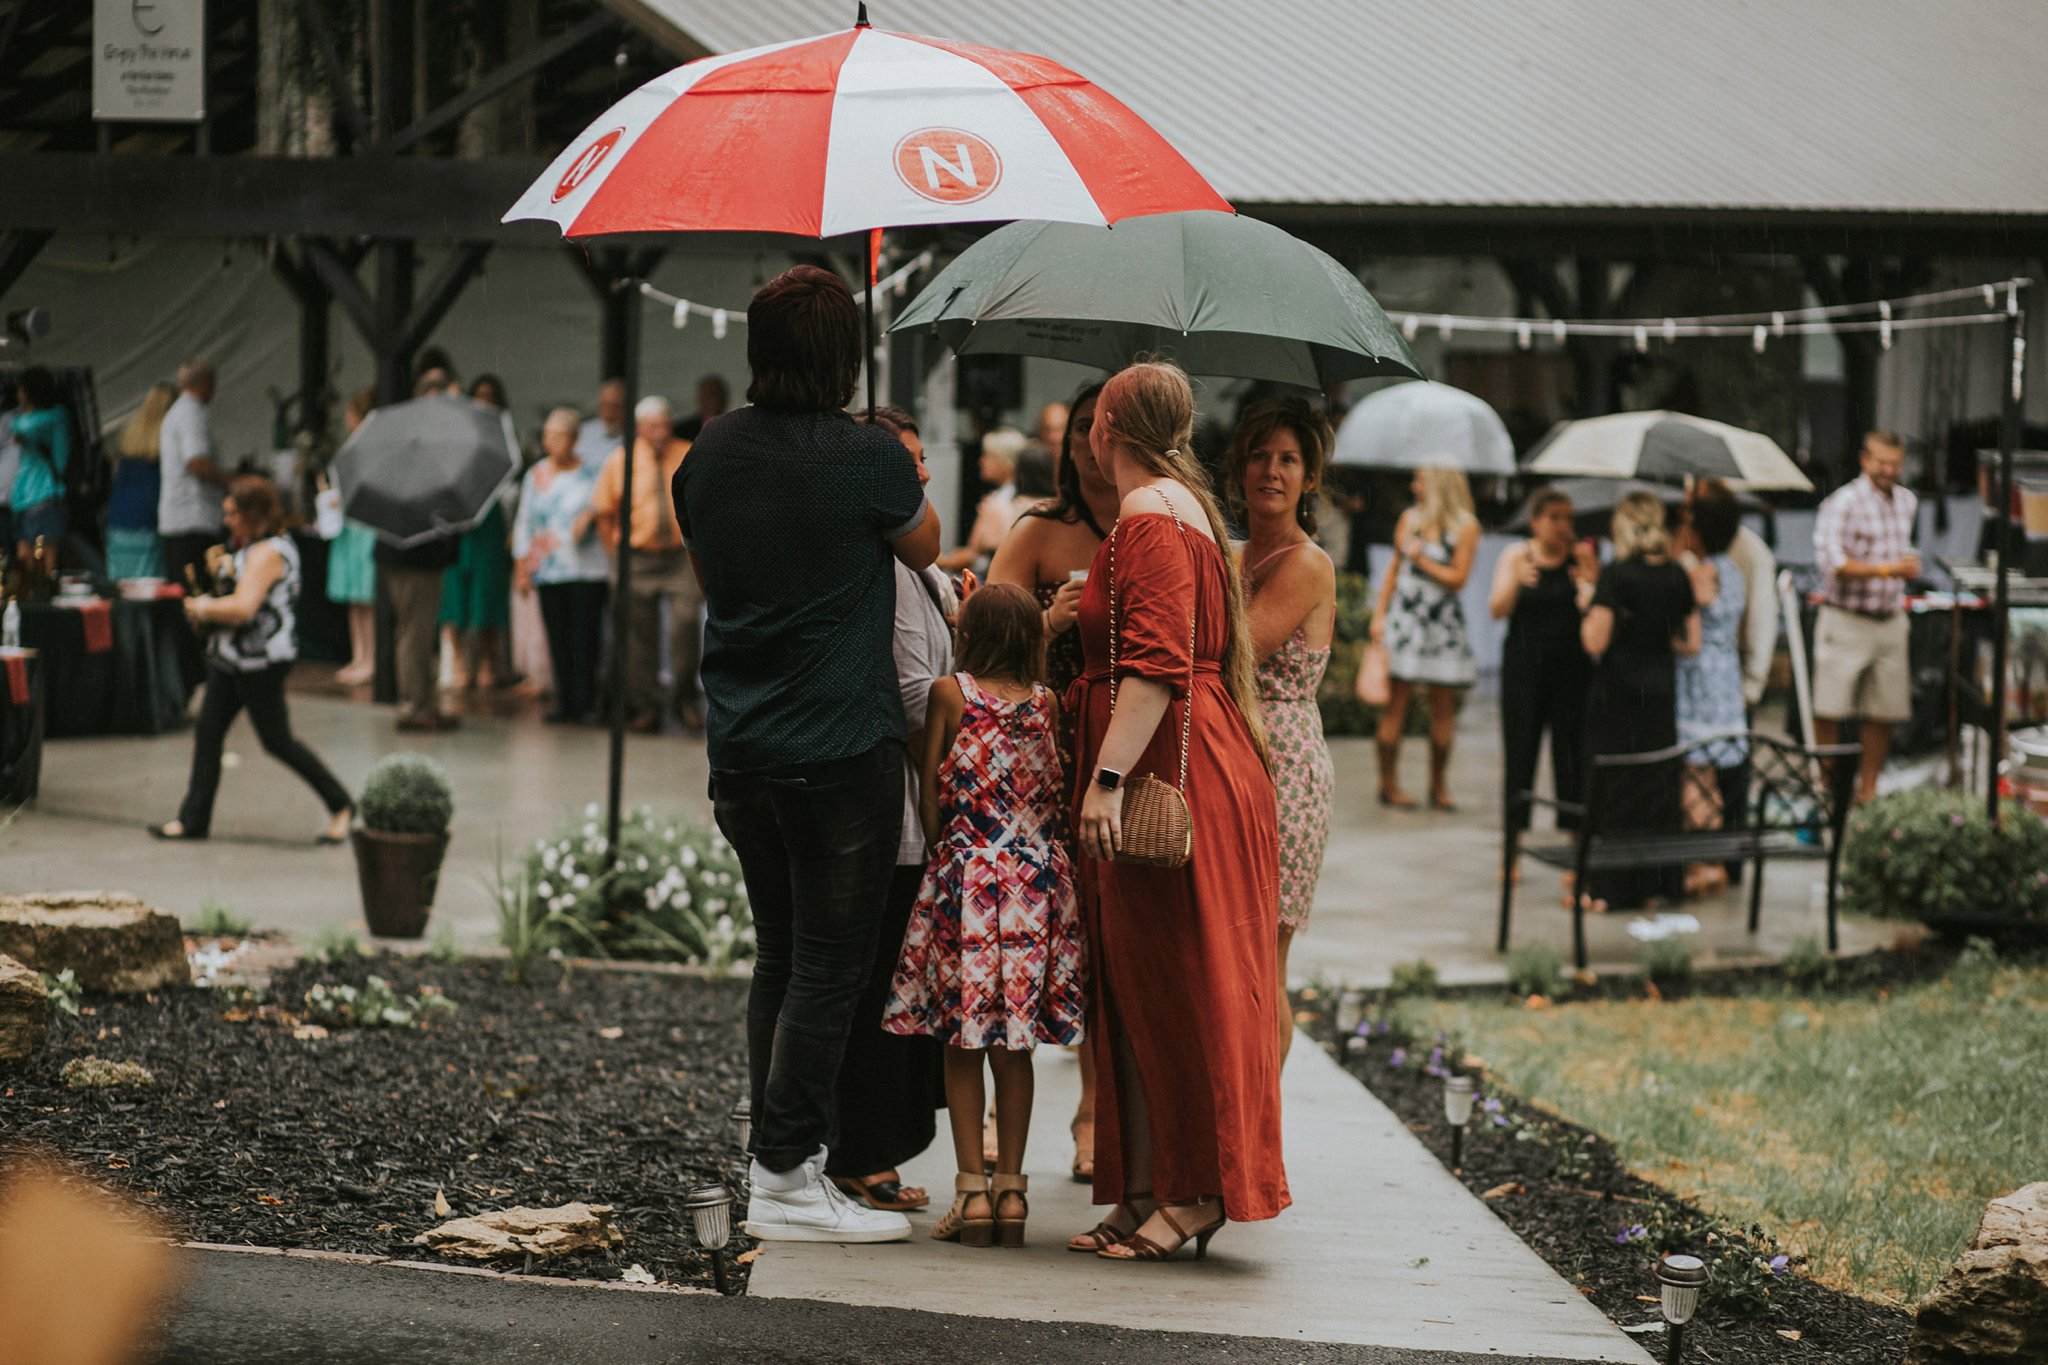 Southern-Indiana-Rainy-Outdoor-Wedding-Photos_0034.jpg